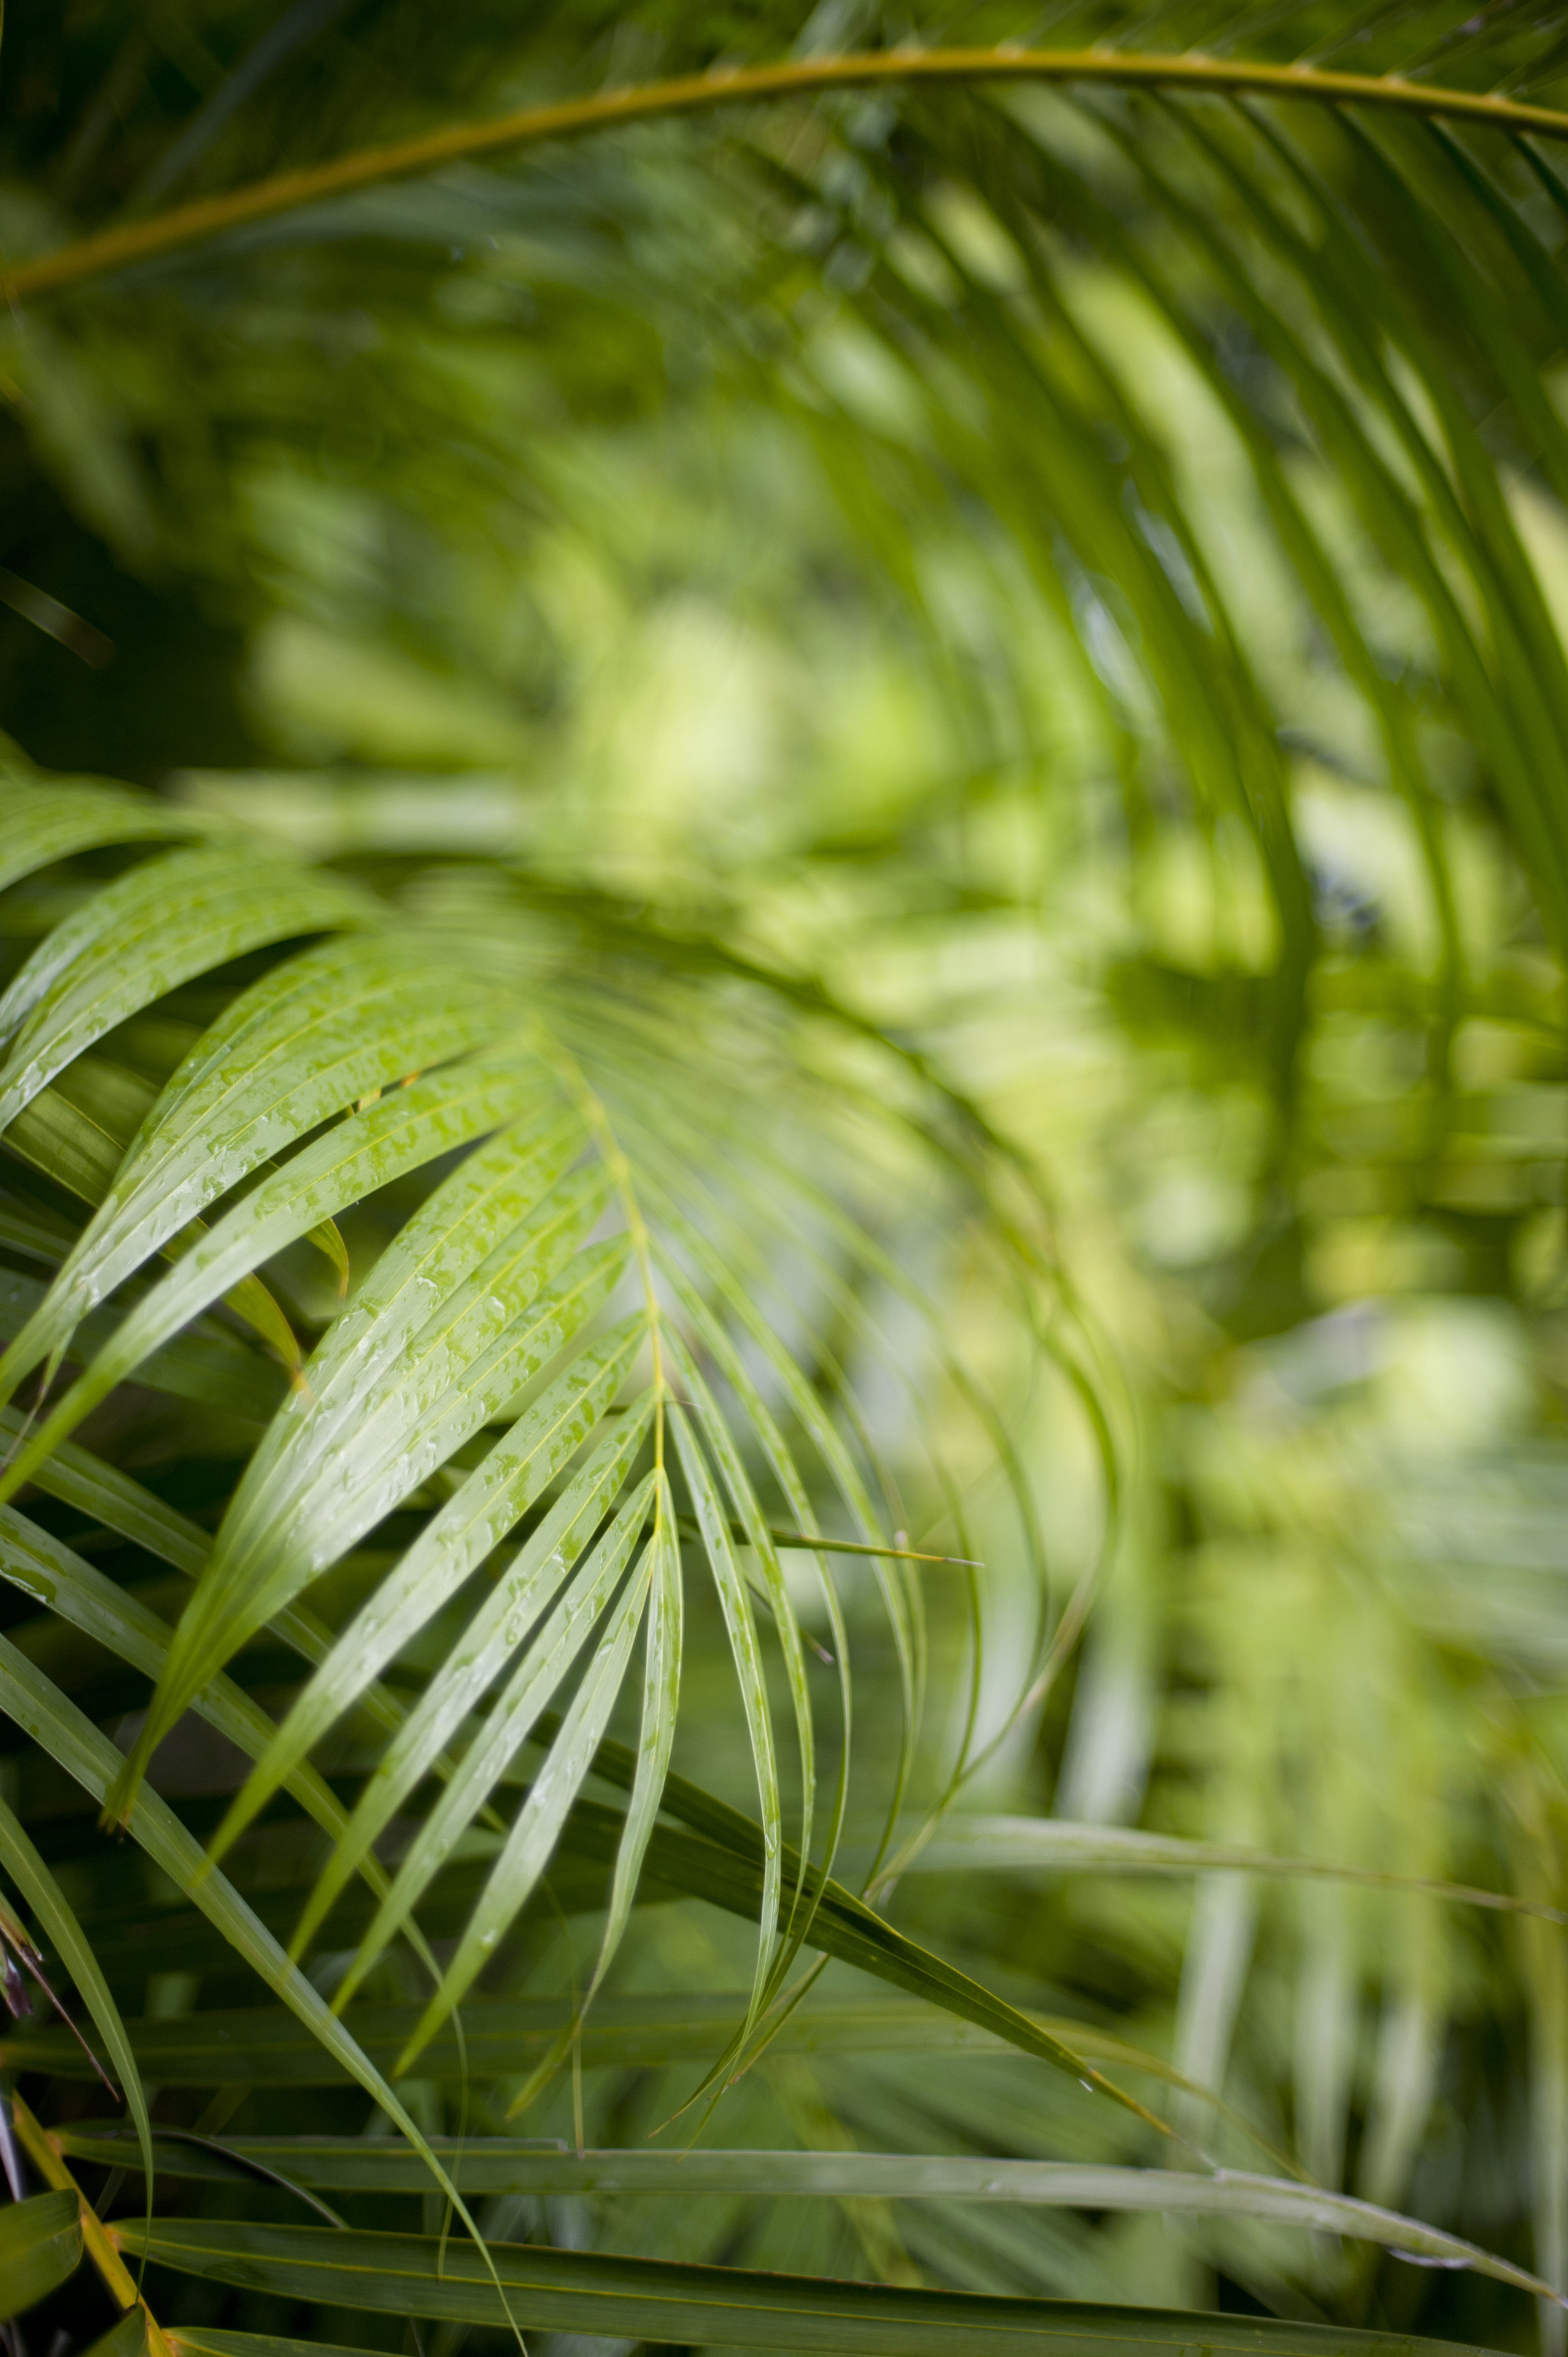 Fresh green cane palm frond cultivated for its foliage in many tropical gardens in a close up botanical background